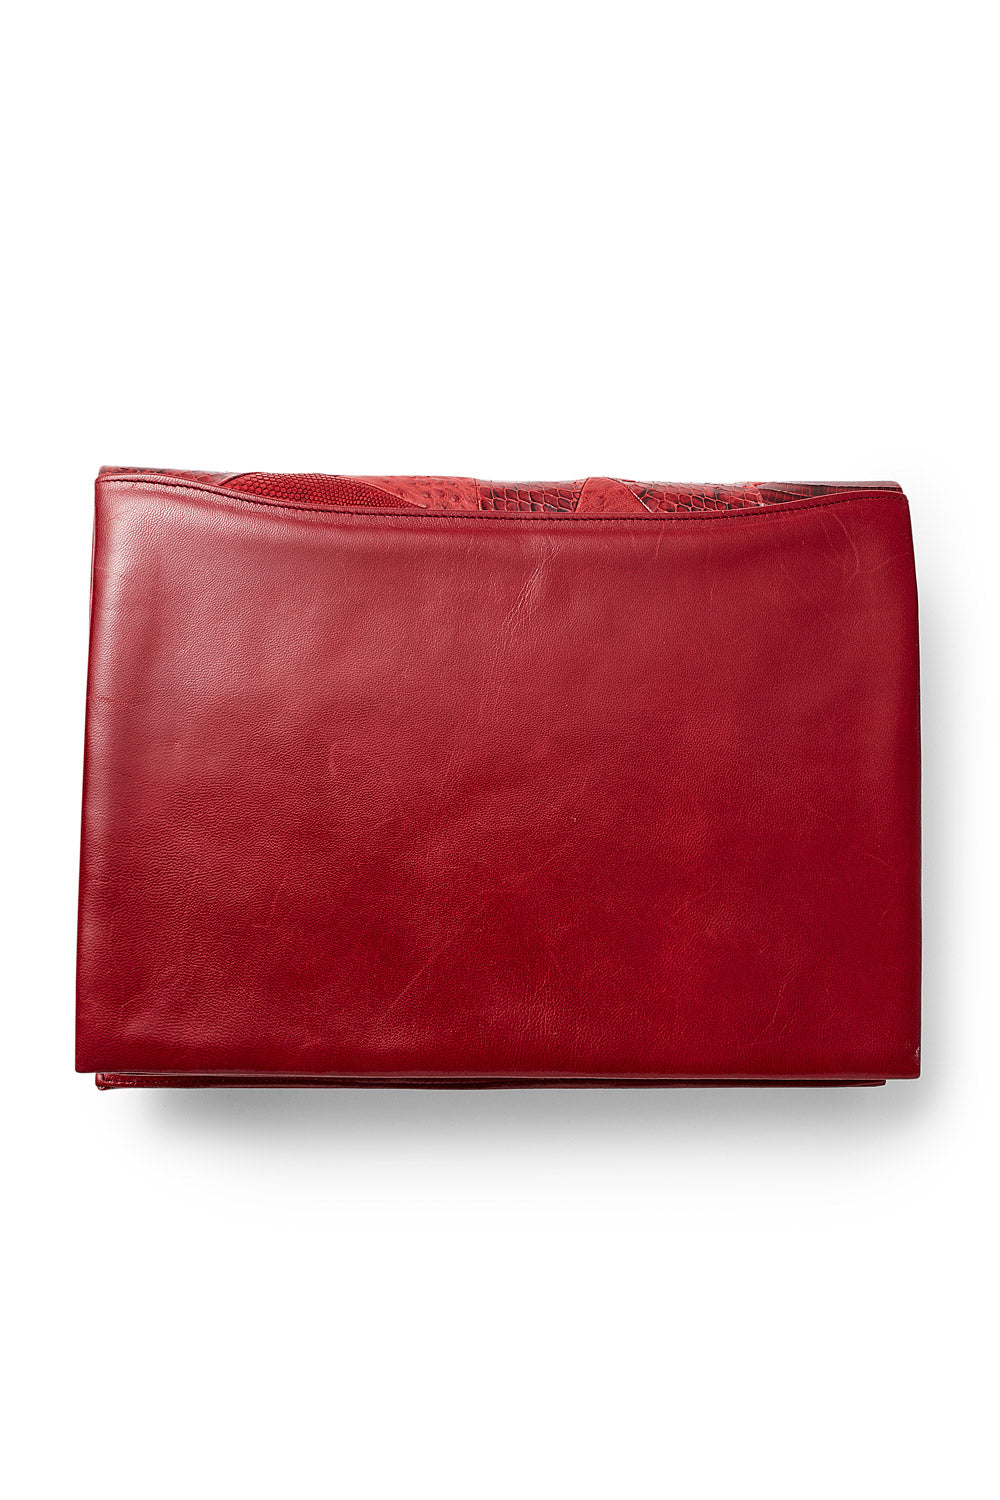 Andrea Pfister<br>1970's/80's red snakeskin & leather patchwork clutch bag